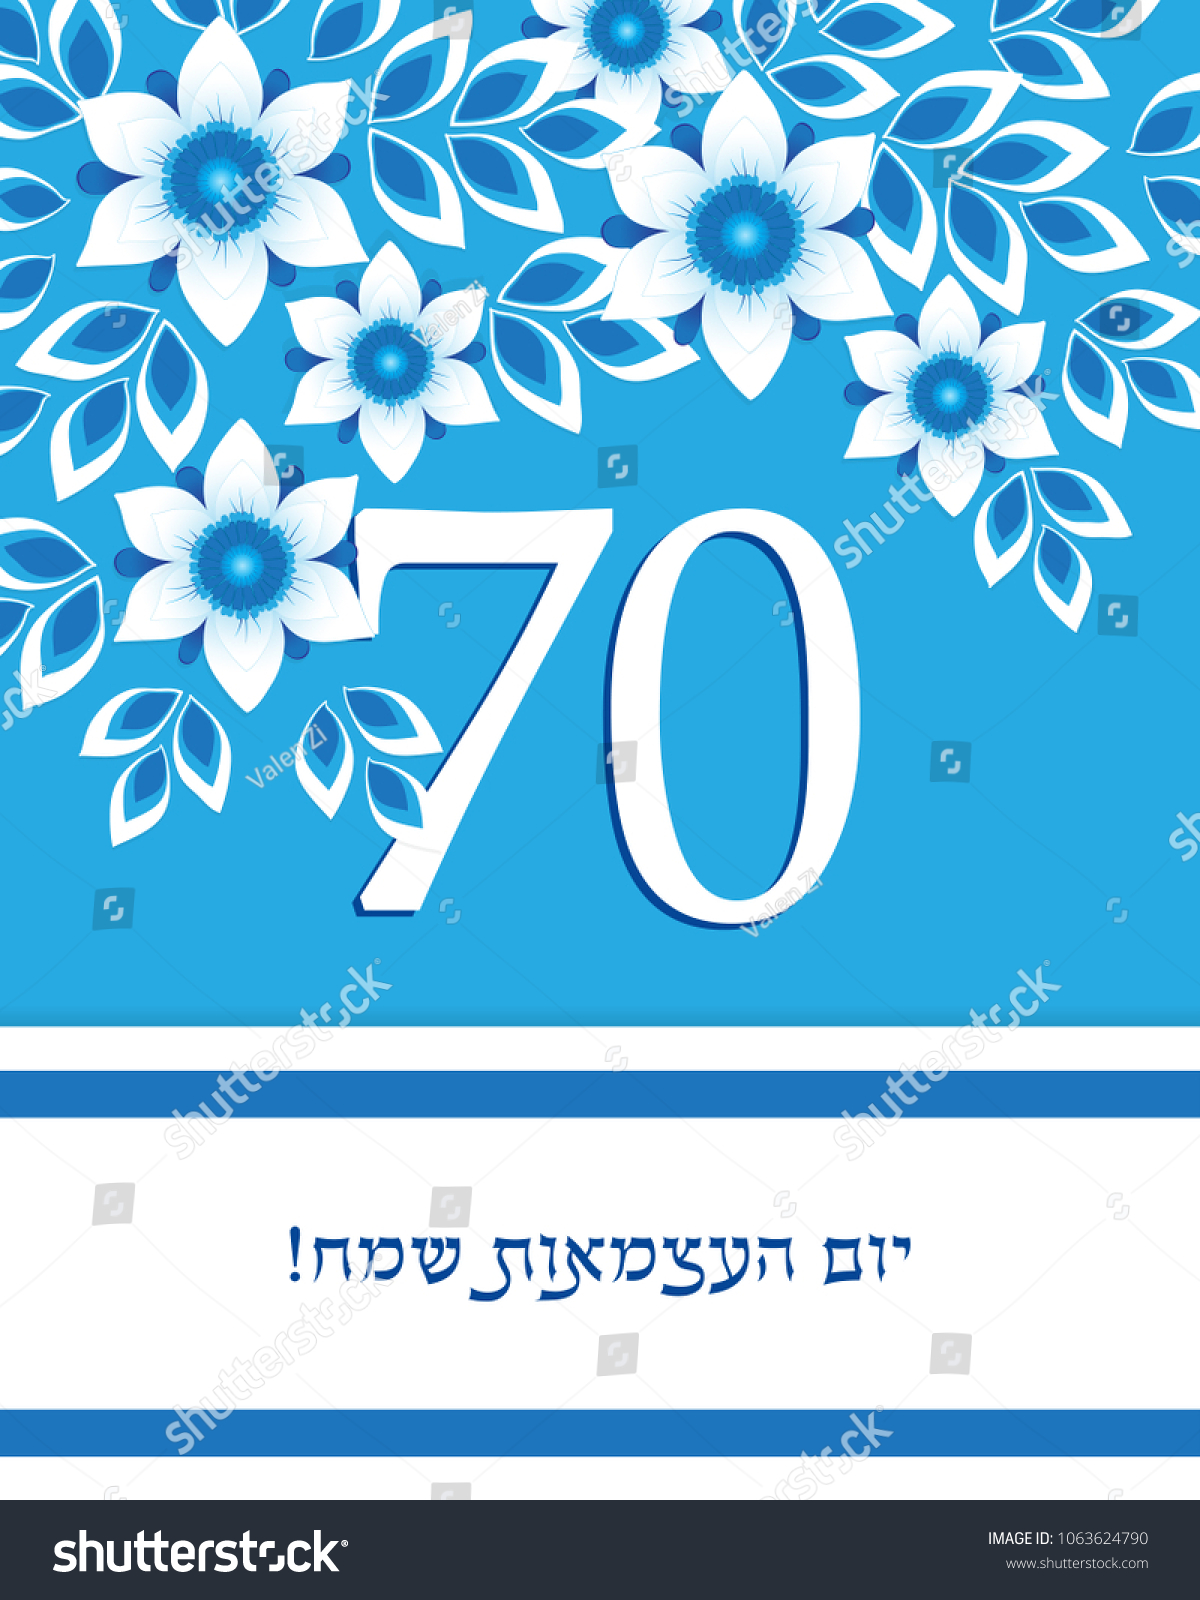 Israel Independence Day 70 Years Anniversary Stock Vector Royalty